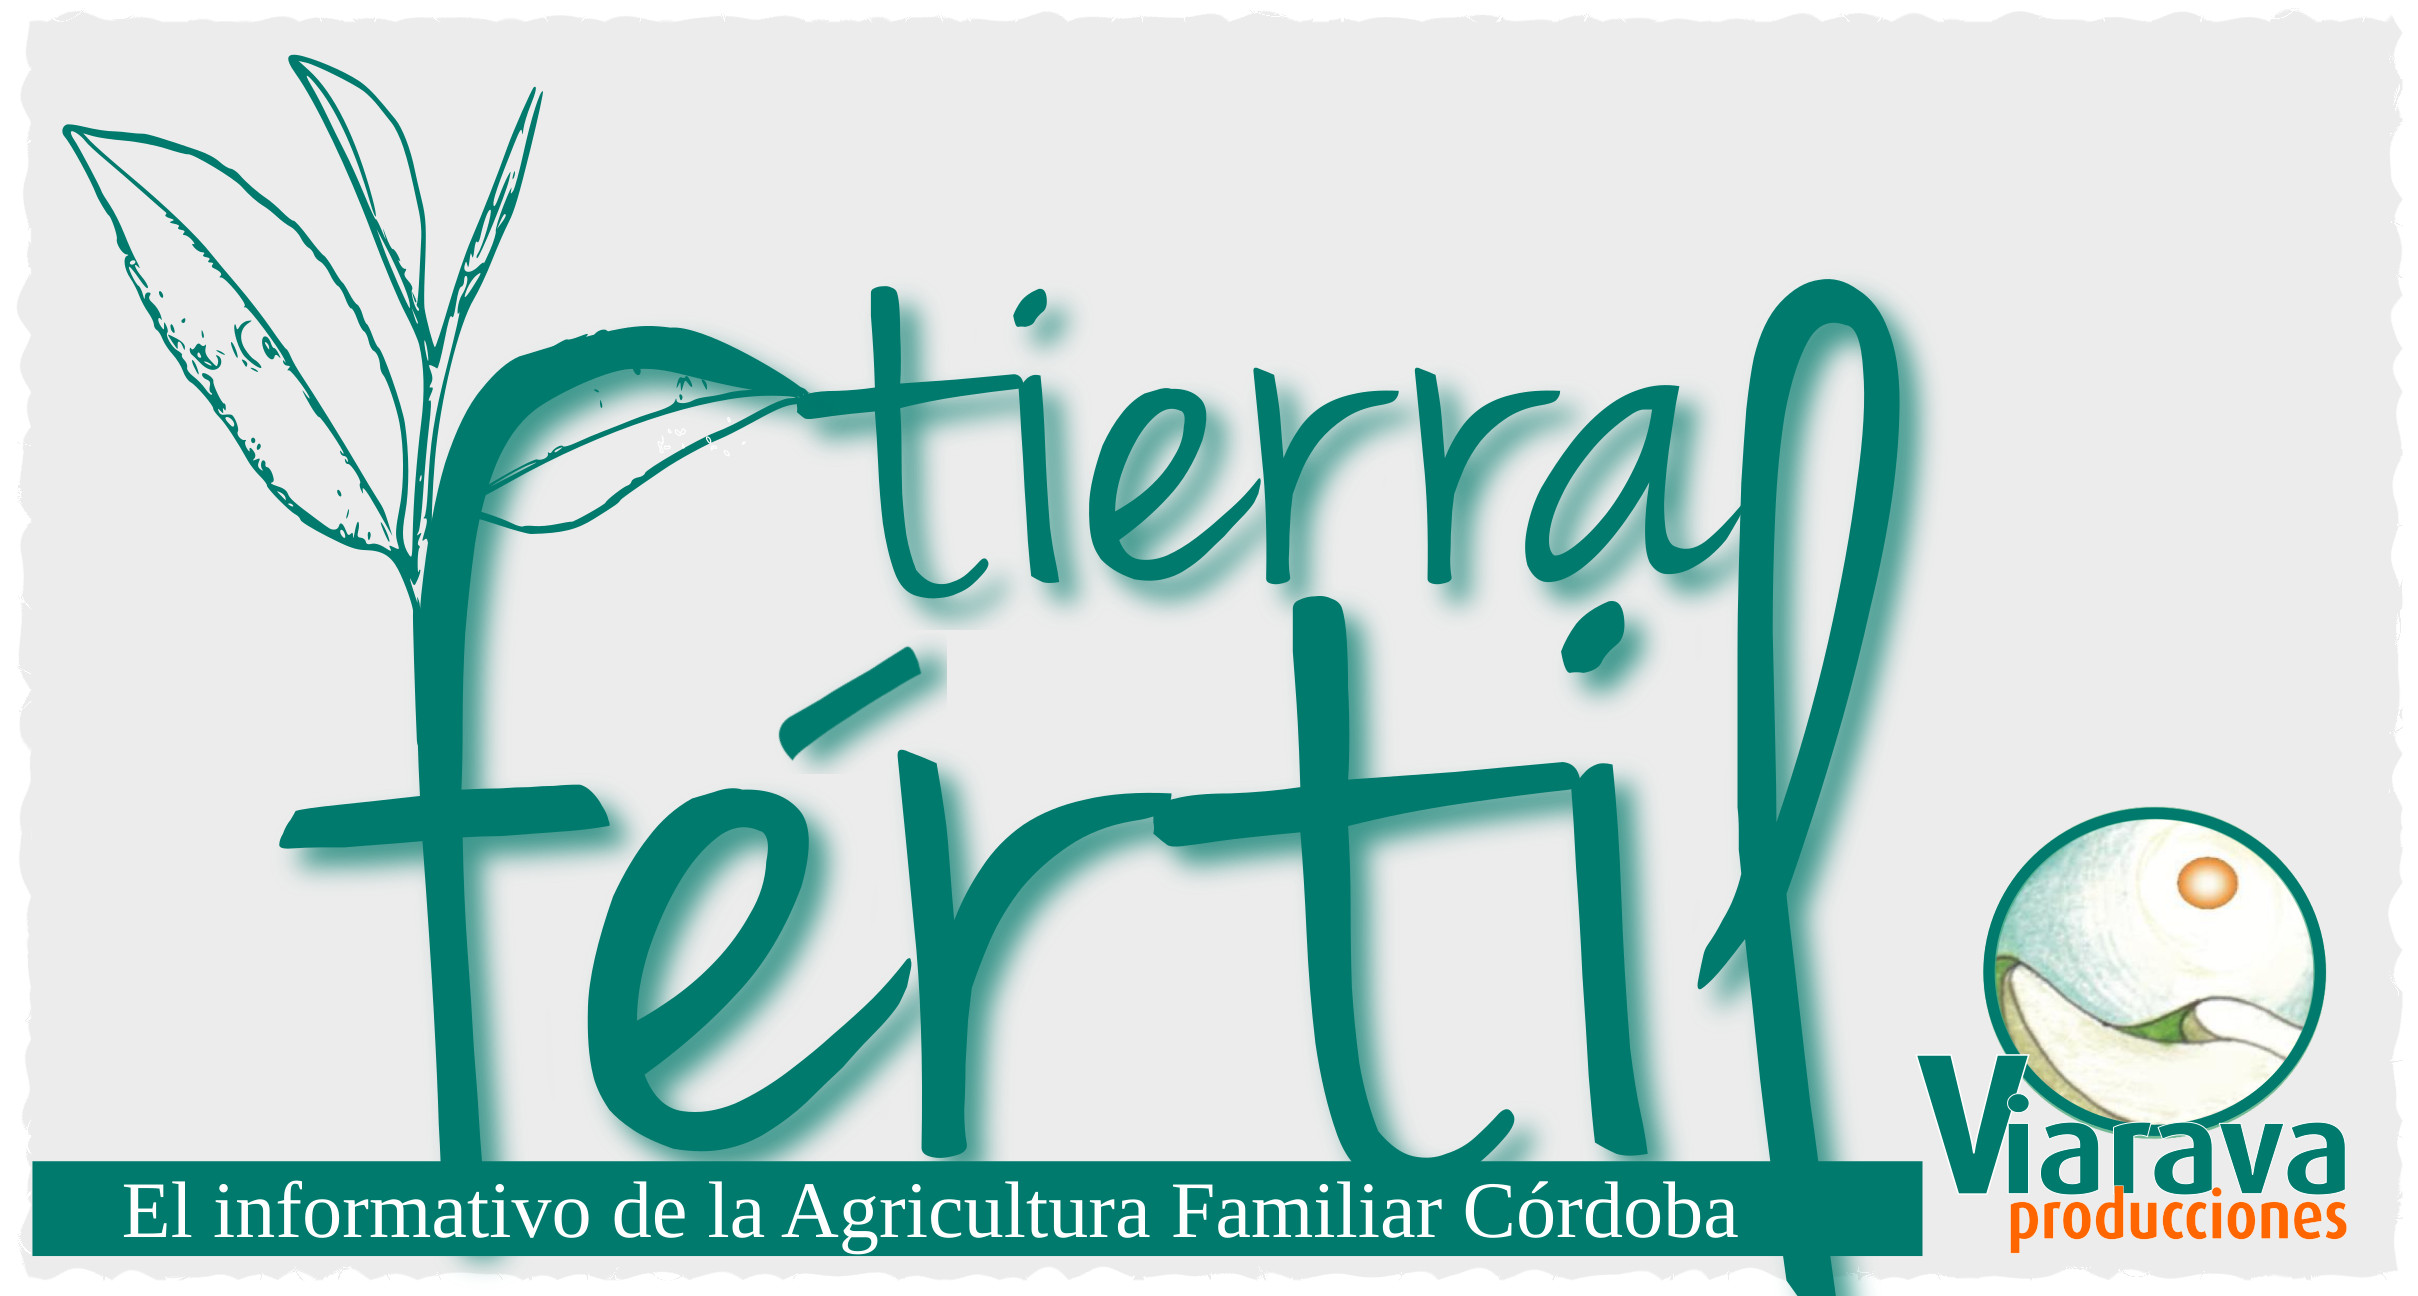 Tierra fertil slide 2016